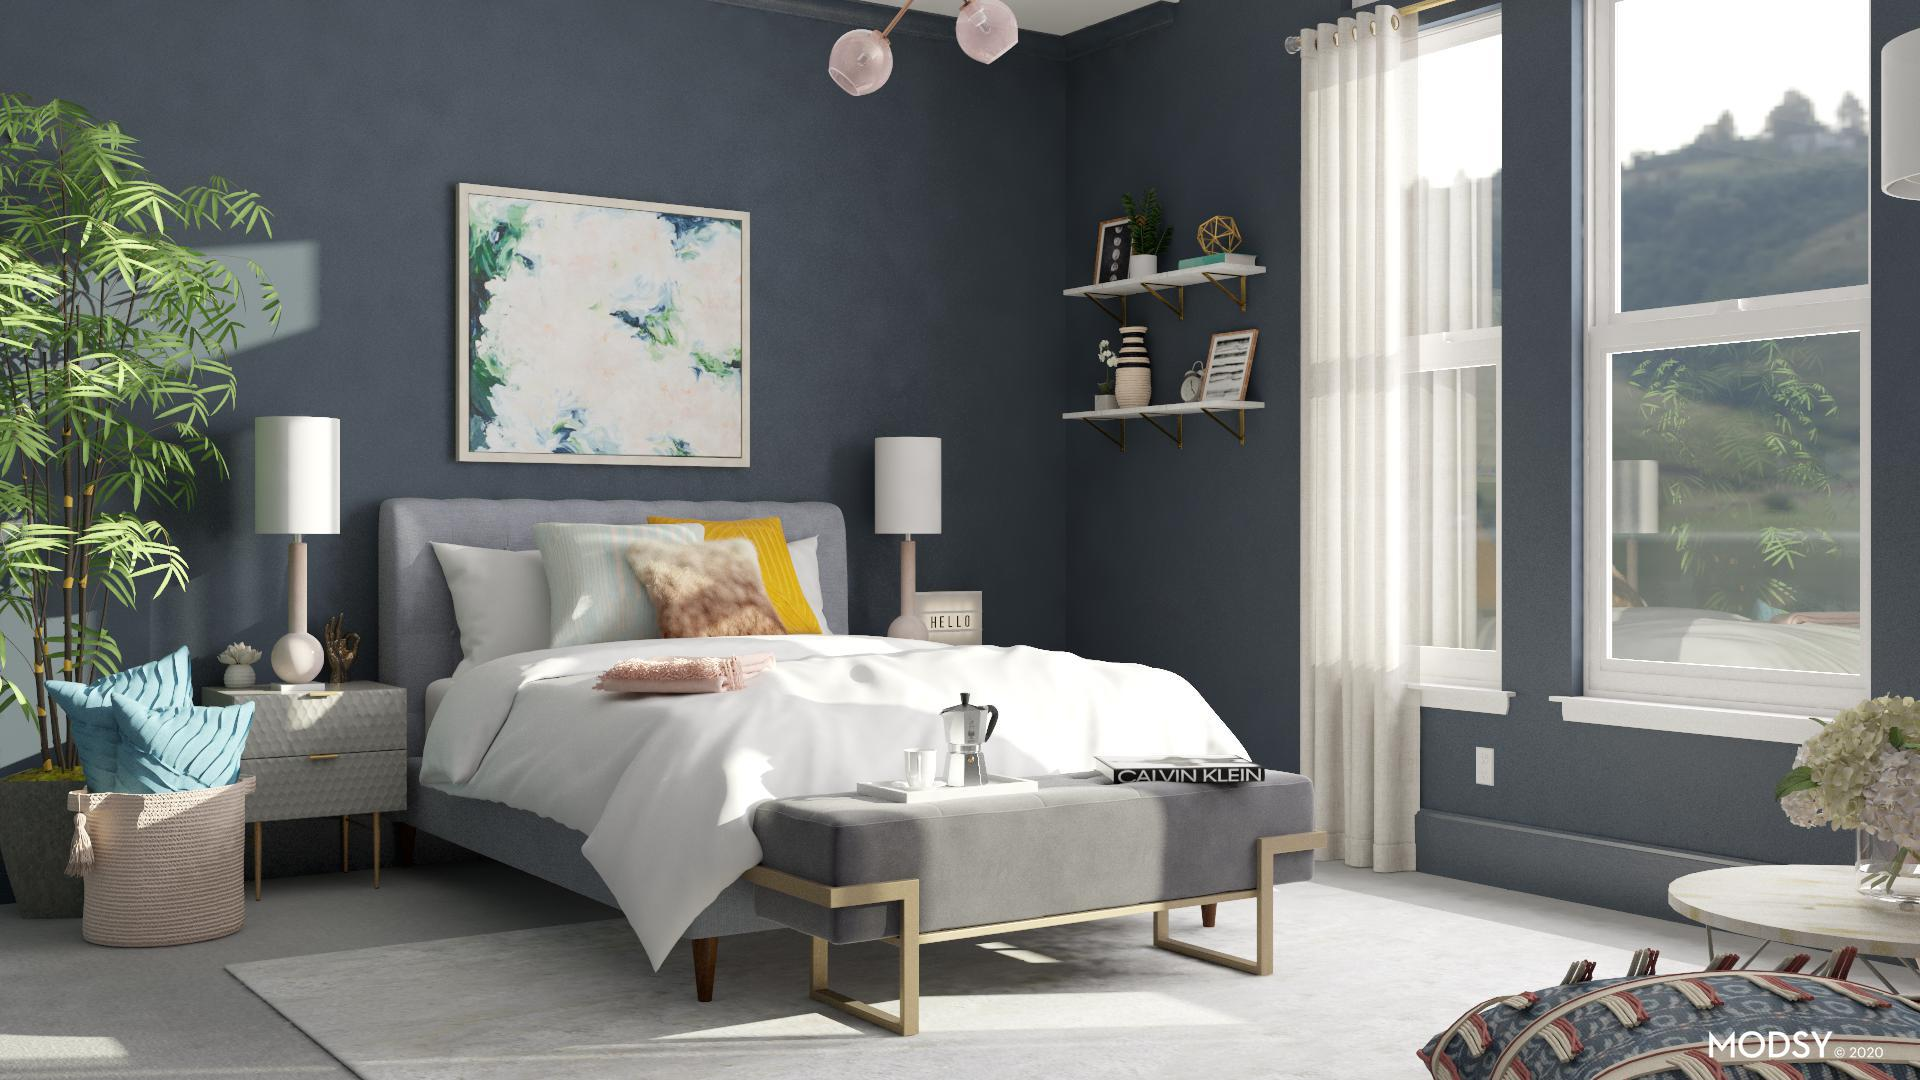 Upholstered Bed Design Ideas And Styles From Modsy Designers